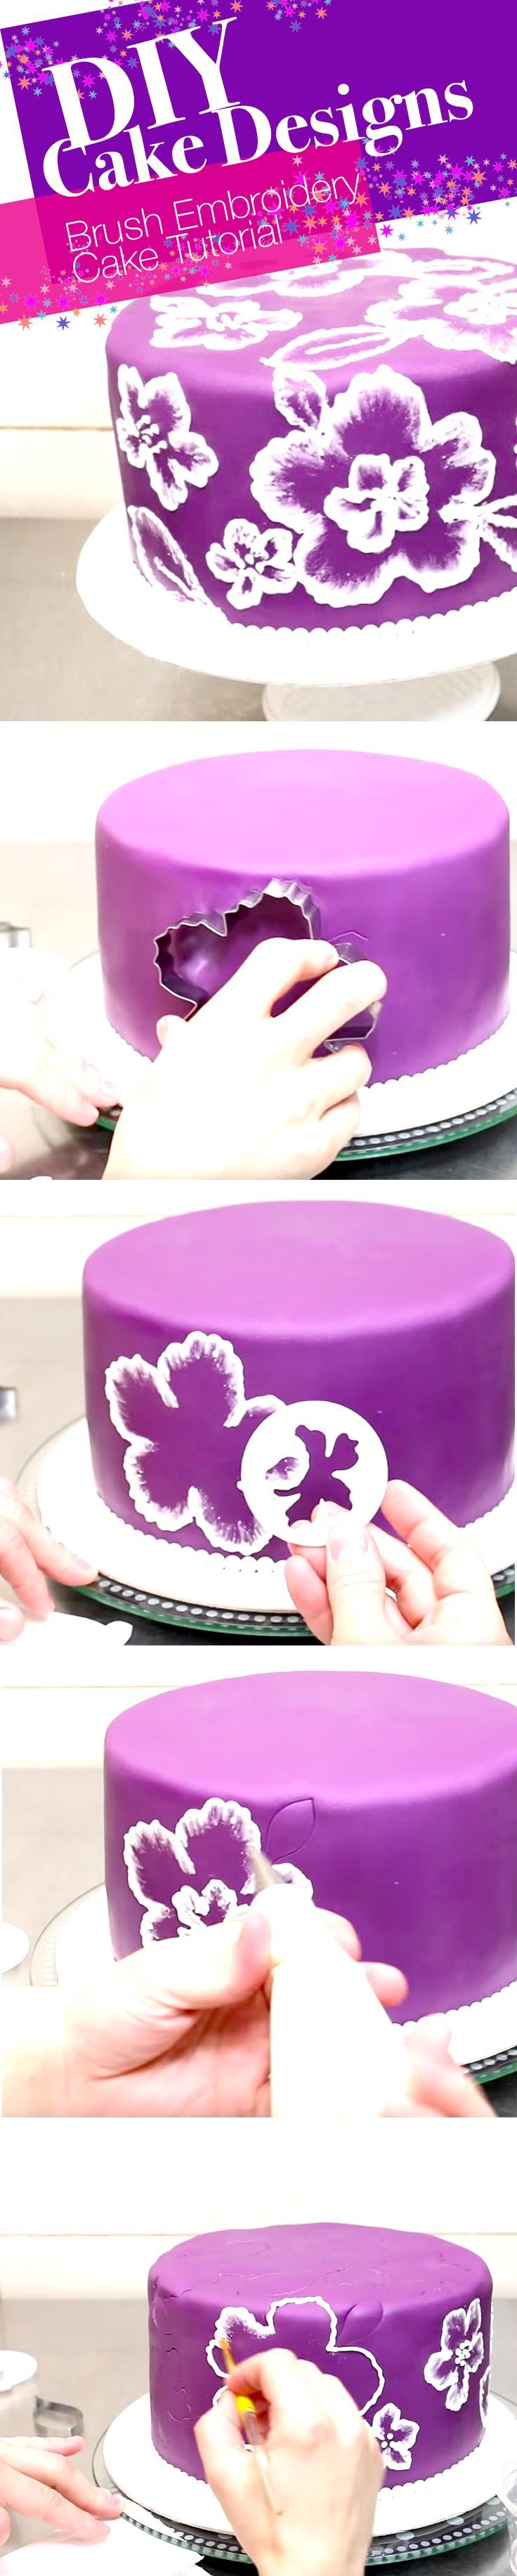 DIY Cake Designs: Brush Embroidery Cake Tutorial